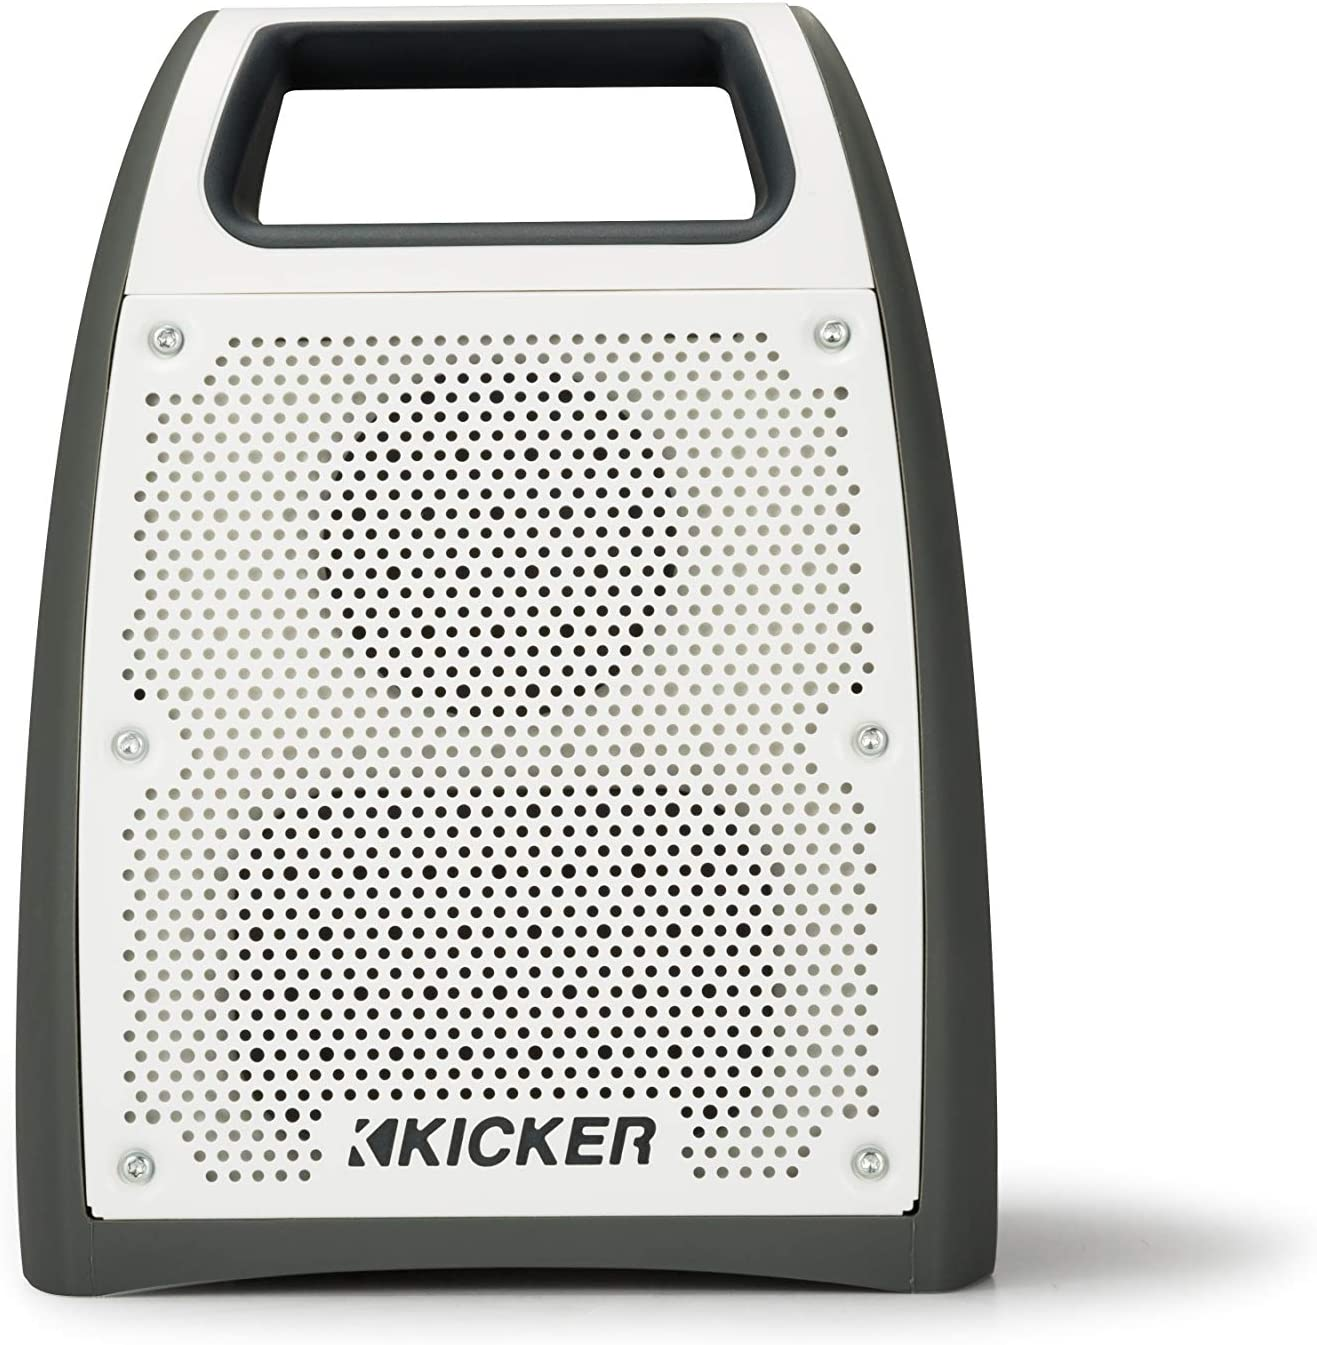 Kicker Bullfrog BF200 Bluetooth Portable Outdoor Speaker | 360° Sound Field | Waterproof Dustproof Casing IP66 Rating | Powerful 20 Watt AMP | 100 FT Wireless Range